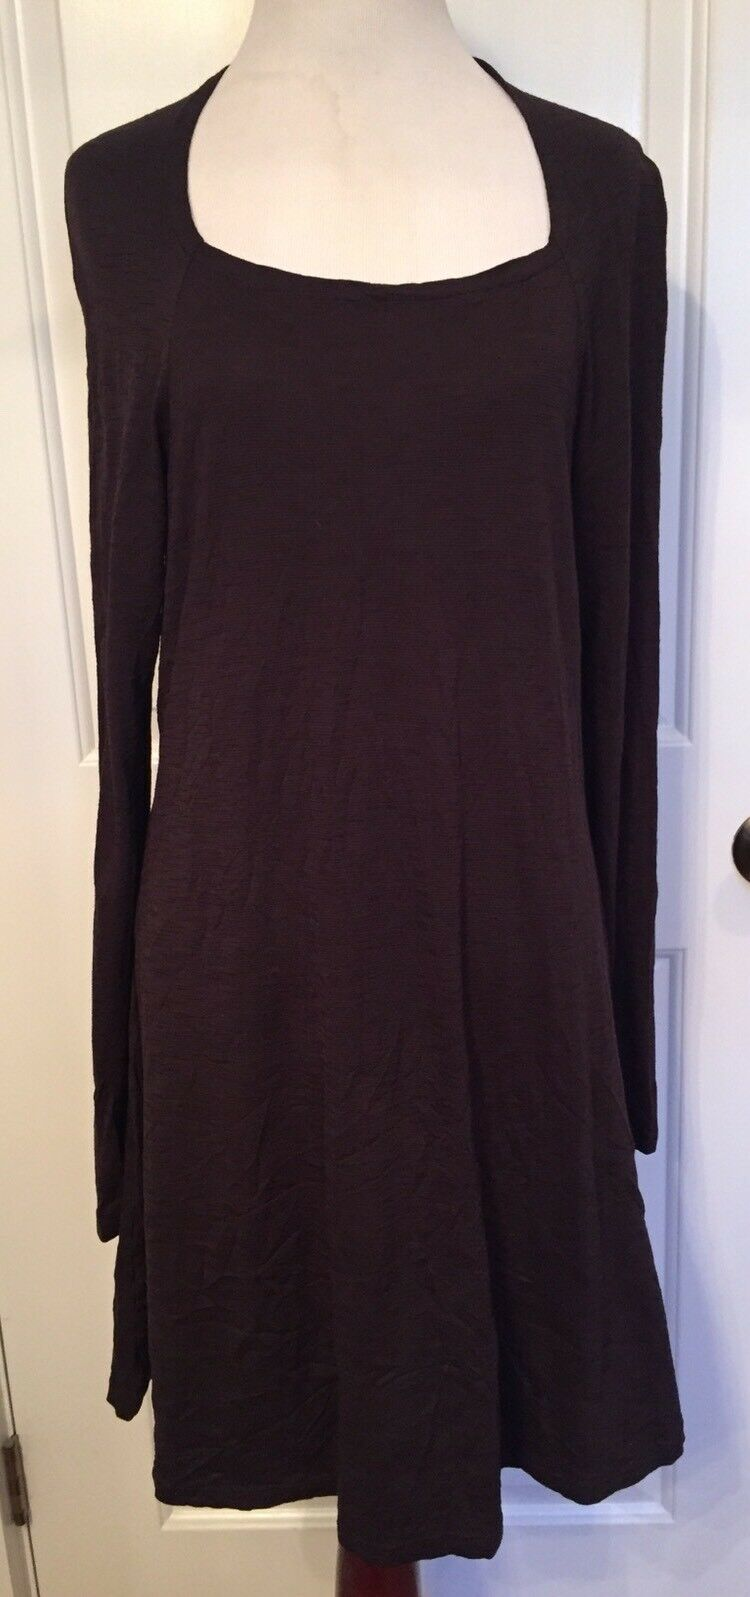 BANANA Blau AUSTRALIA Dress schwarz Lagenlook Tunic knee length Fit & Flare Large